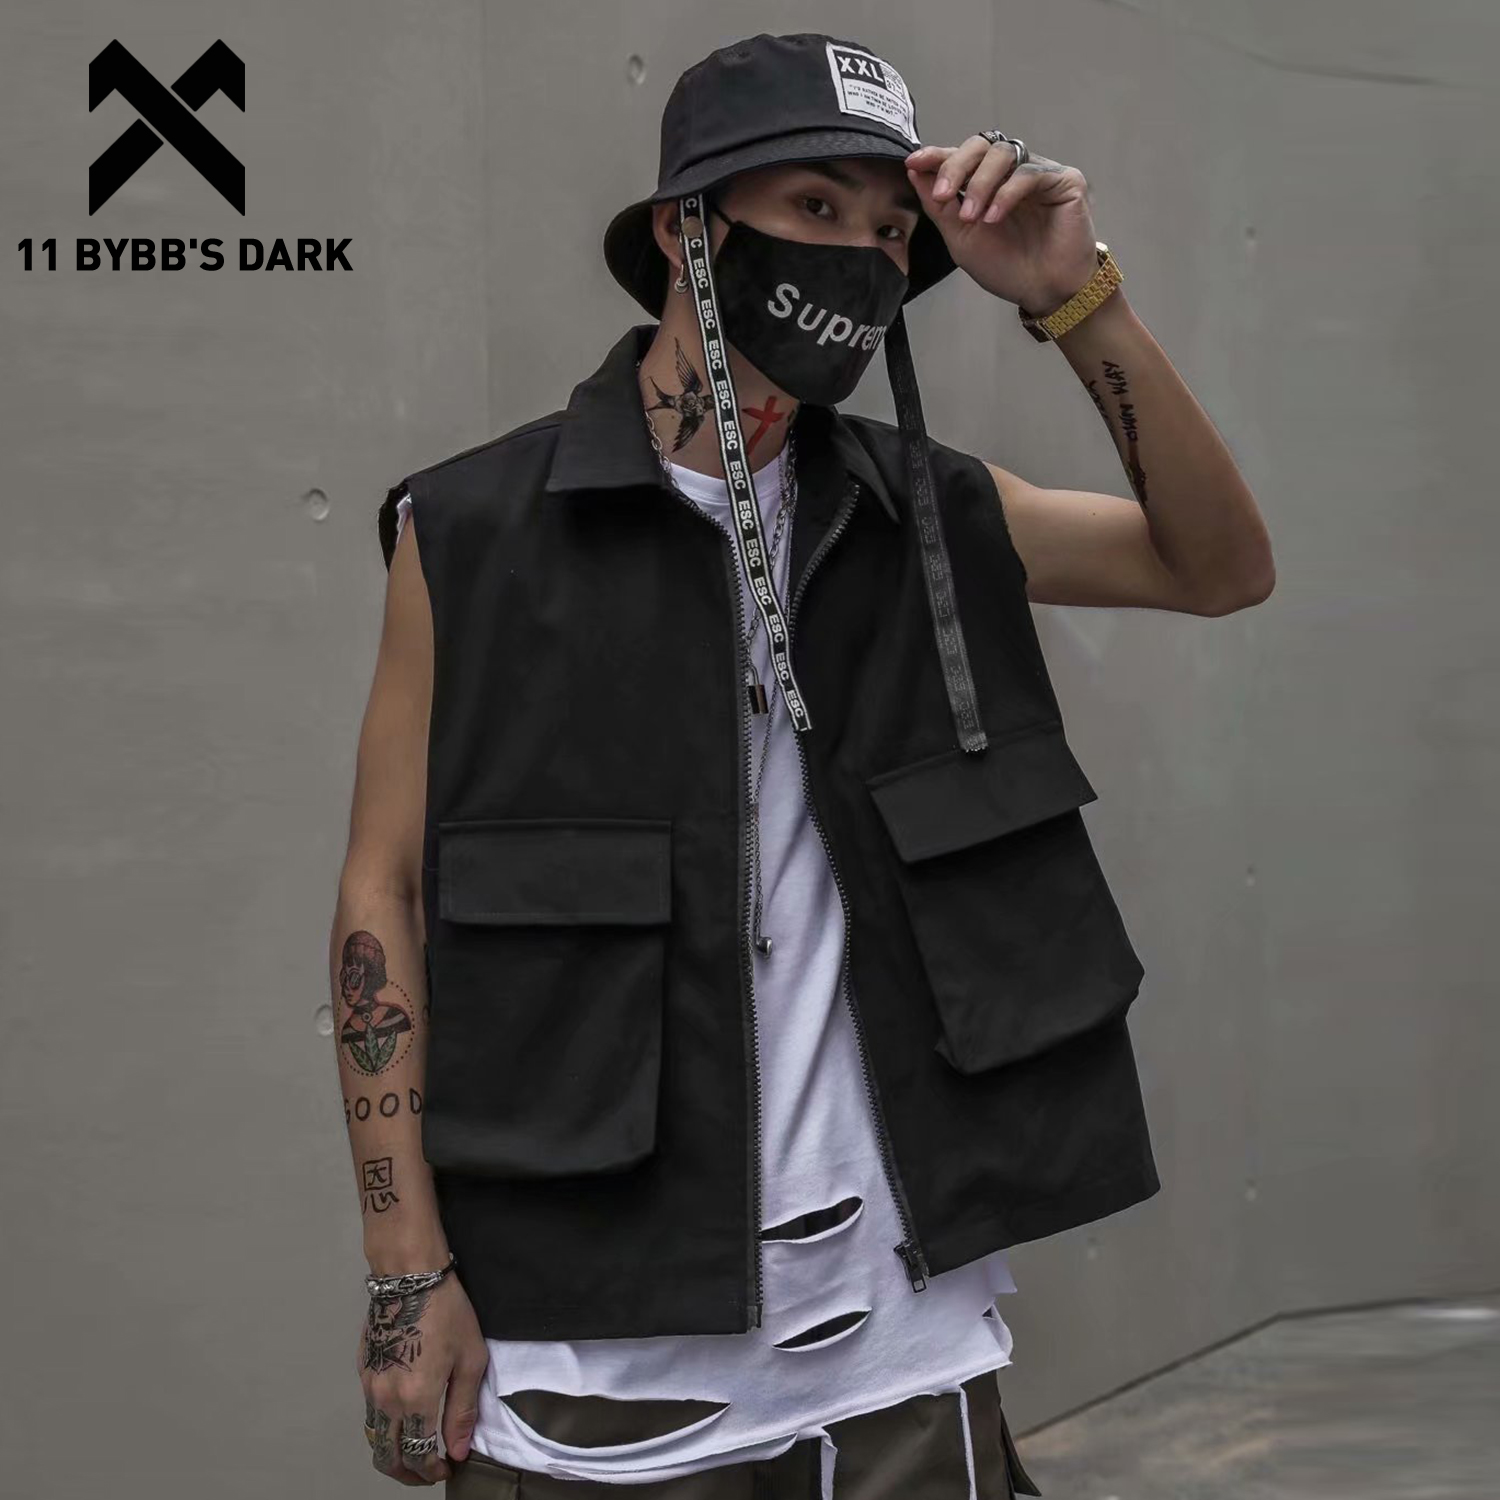 11 BYBB'S DARK Vintage Multi Pockets Tactical Vest Men Fashion Hip Hop Sleeveless Tops 2020 Streetwear Harajuku Male Cargo Coats